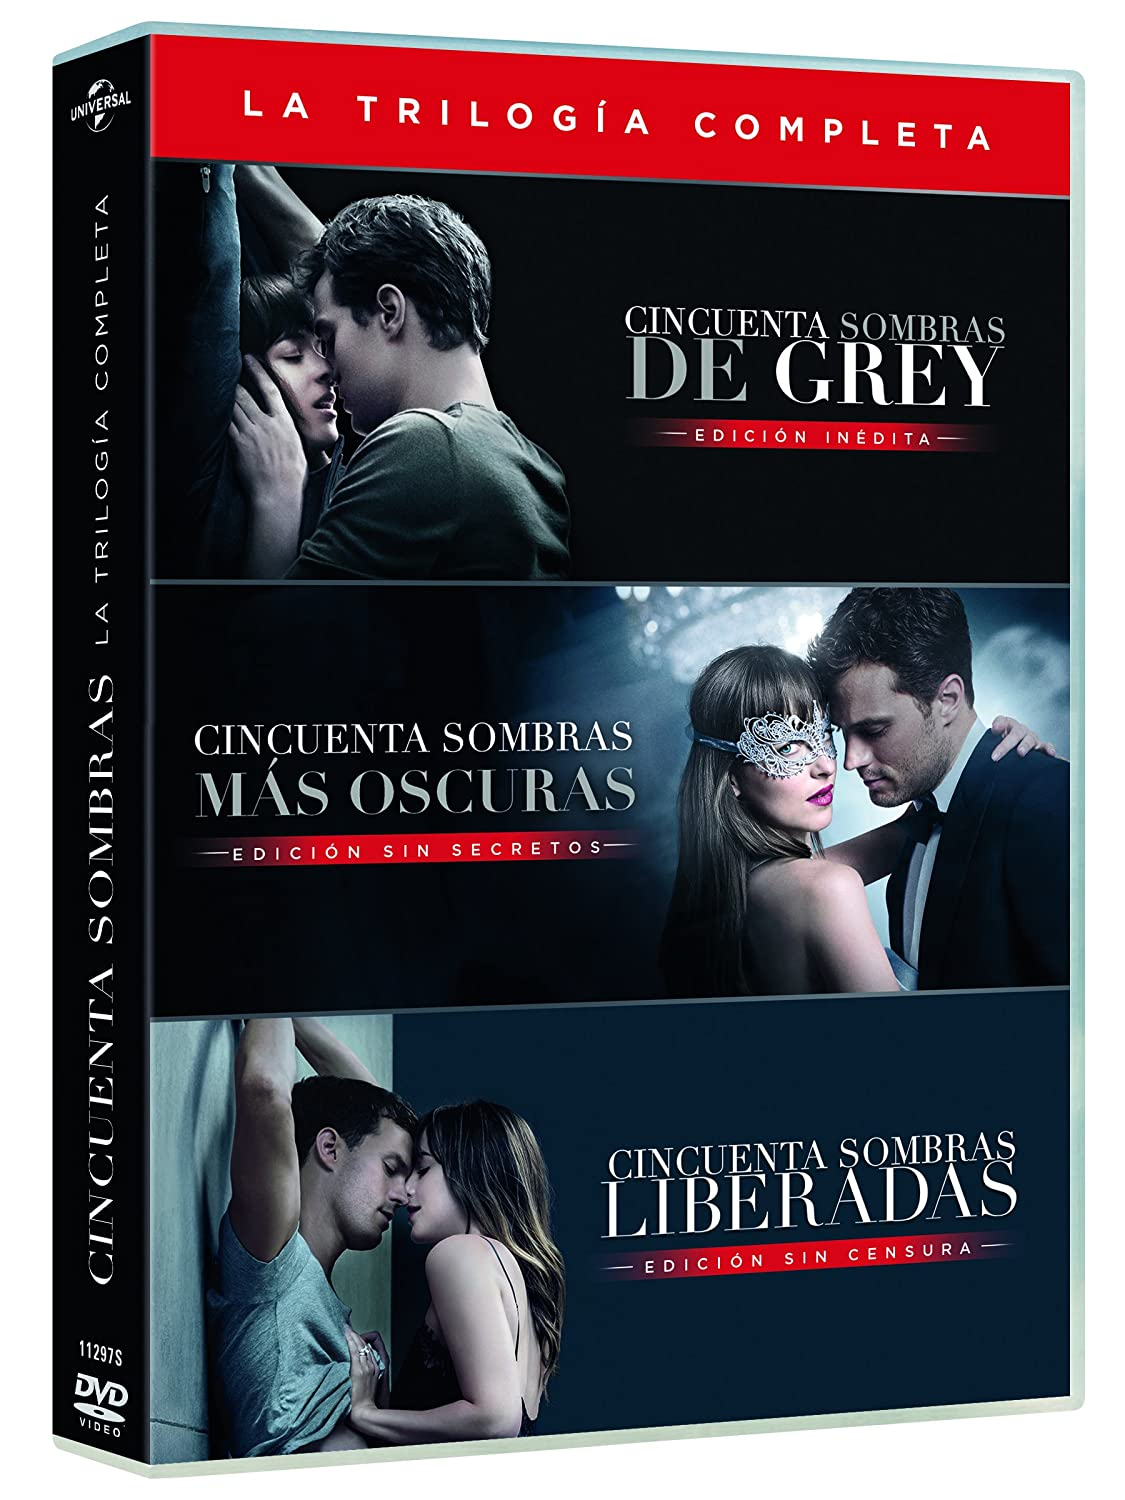 Cincuenta Sombras De Grey - Películas 1-3 [DVD]: Amazon.es: Dakota ...